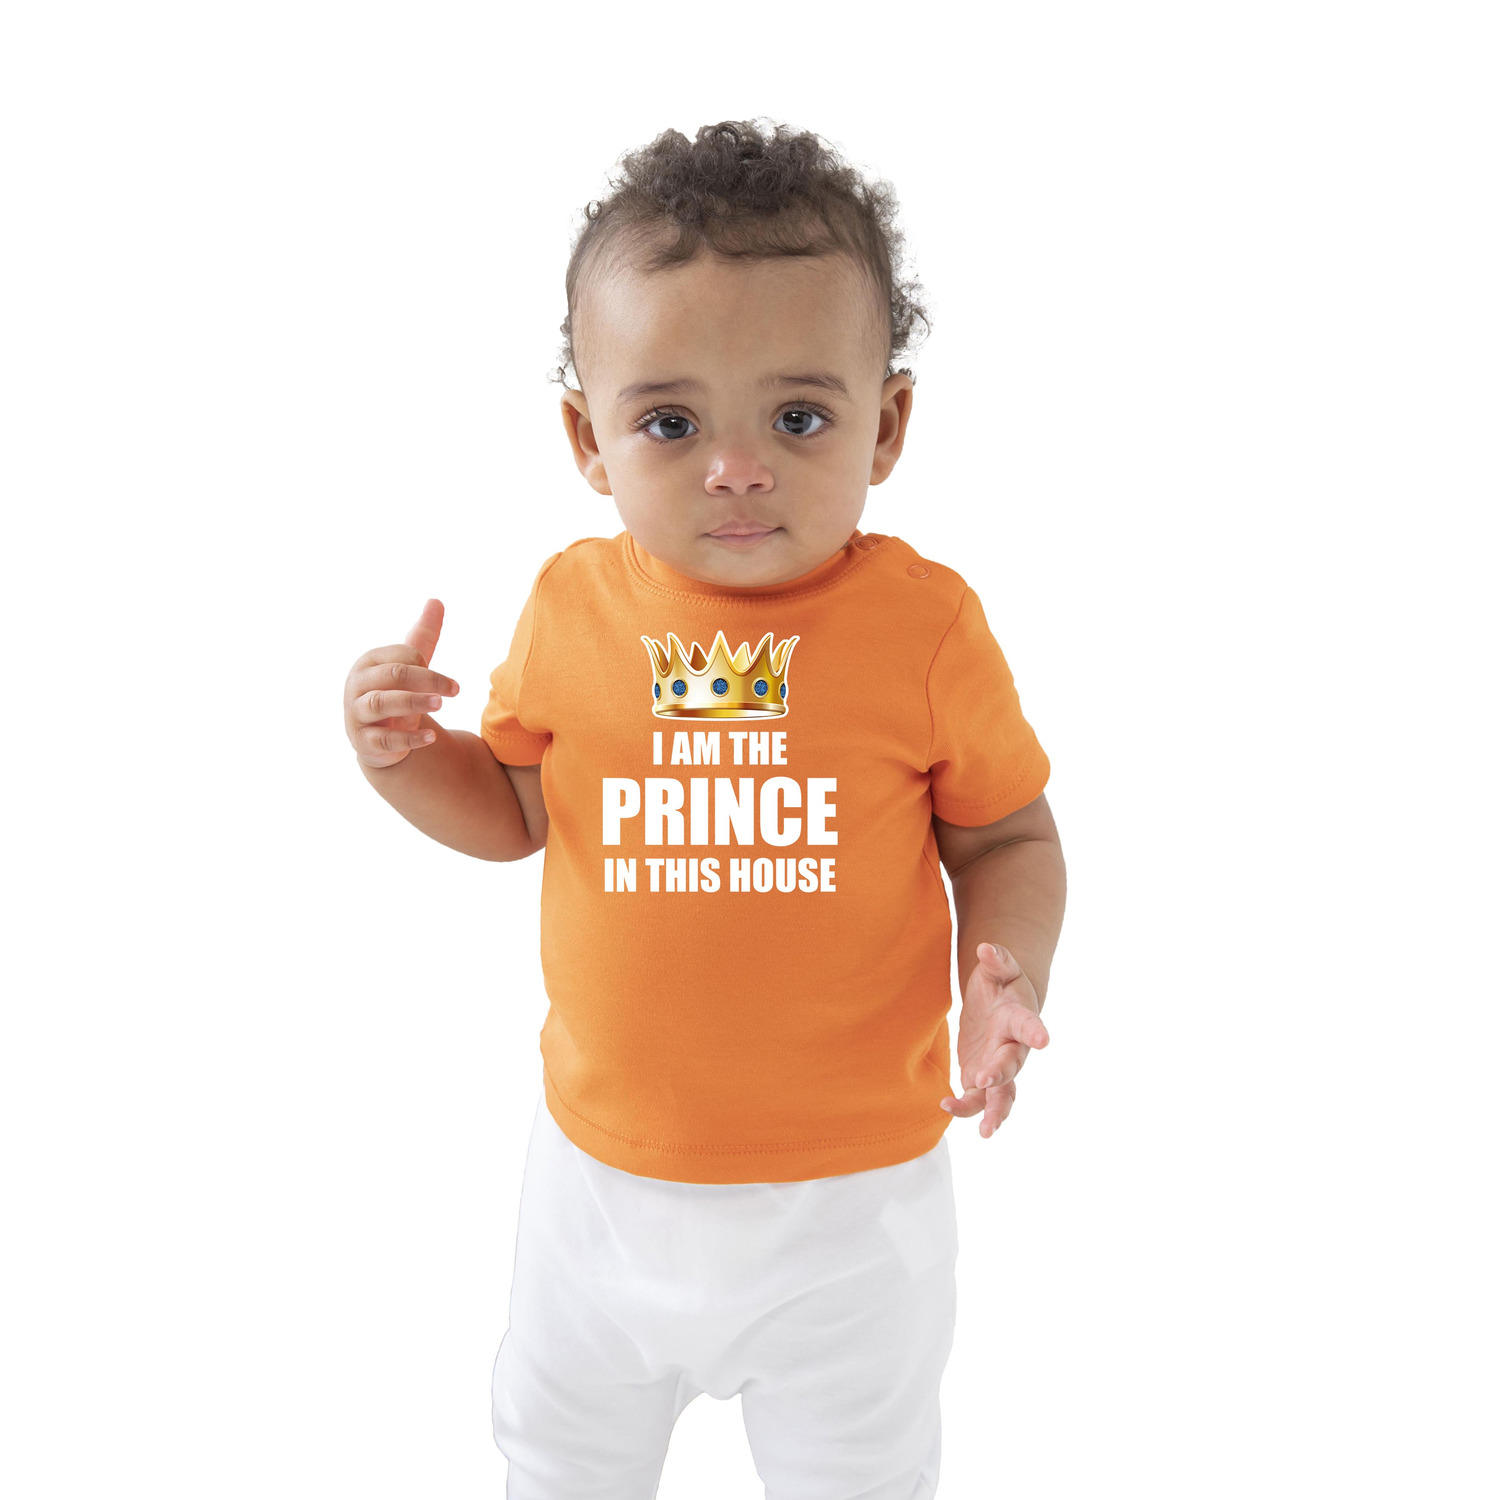 I am the prince in this house Koningsdag t-shirt oranje baby-peuter voor jongens